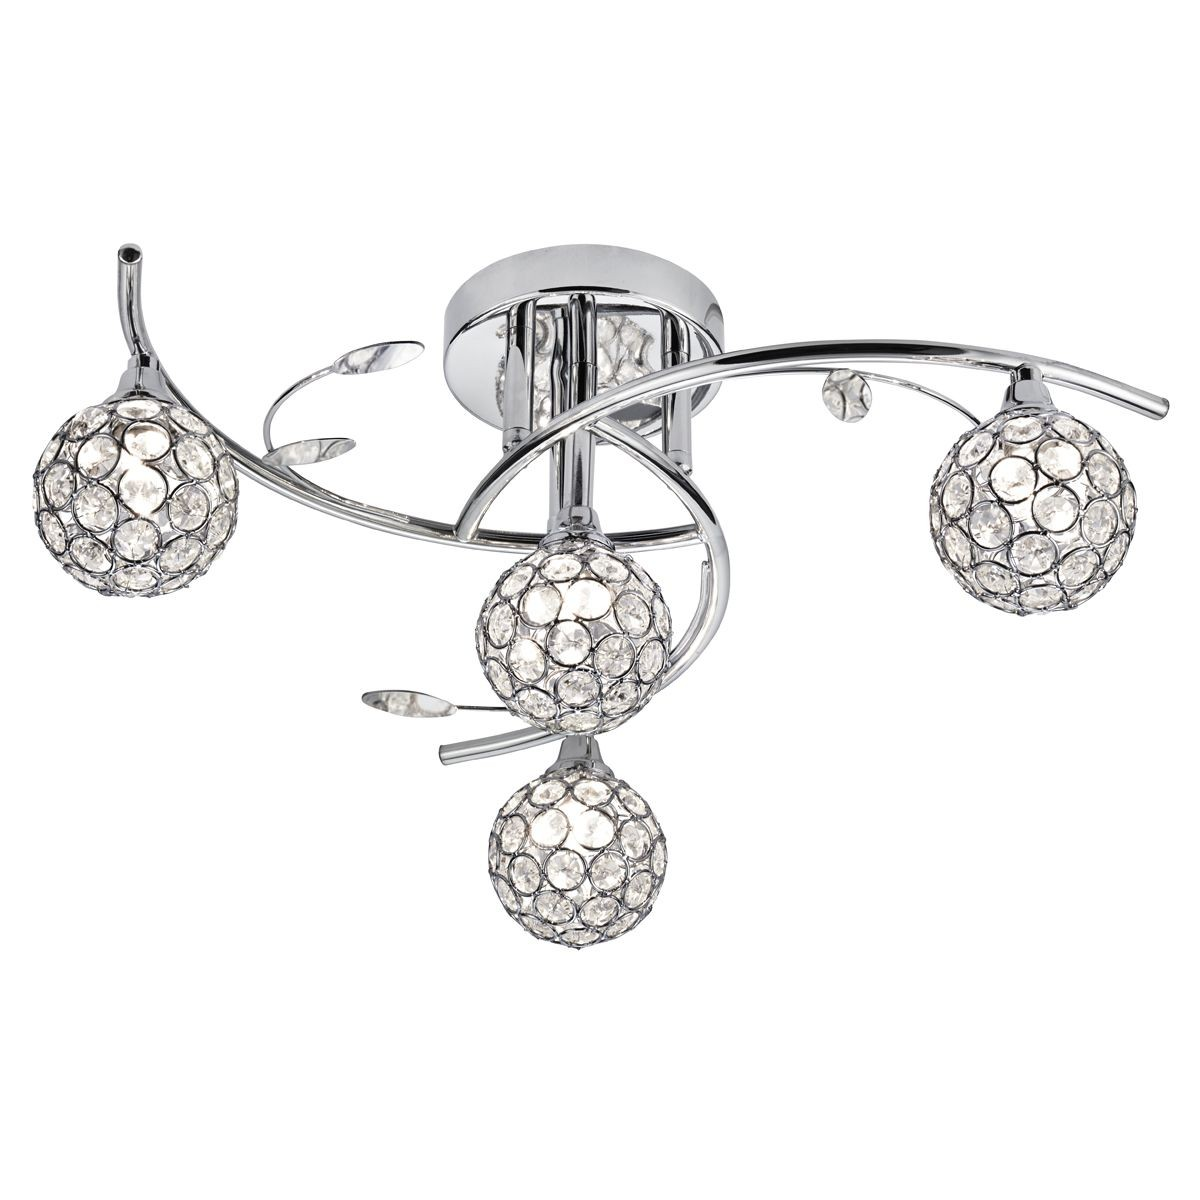 Swirls Semi Flush Ceiling Light With Glass Shades